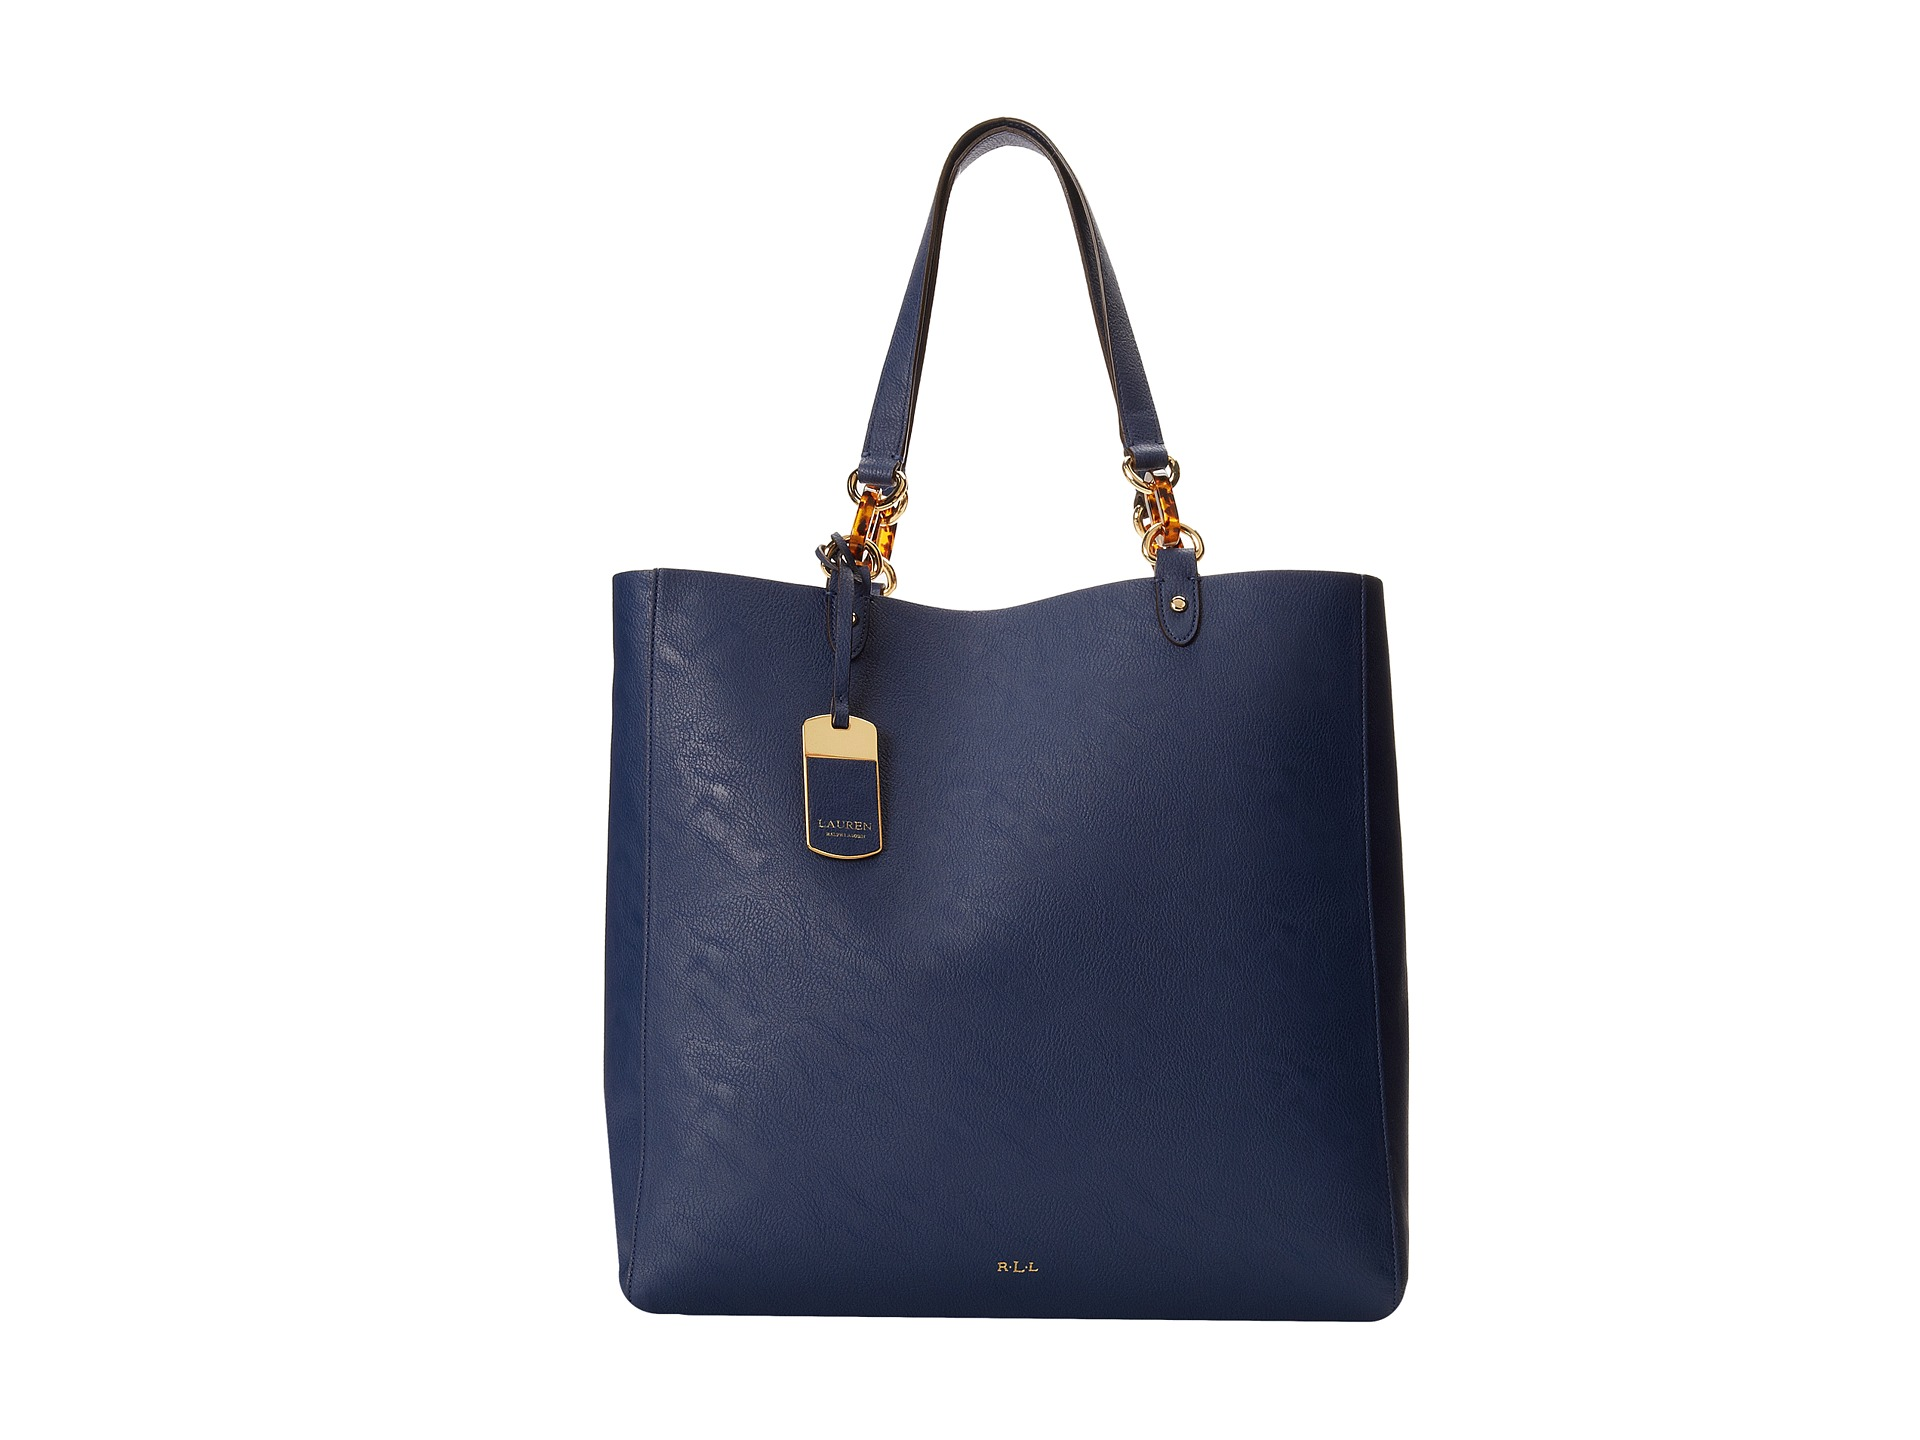 Ralph Lauren Tote Laukku : Lauren ralph bembridge n s tote shipped free at